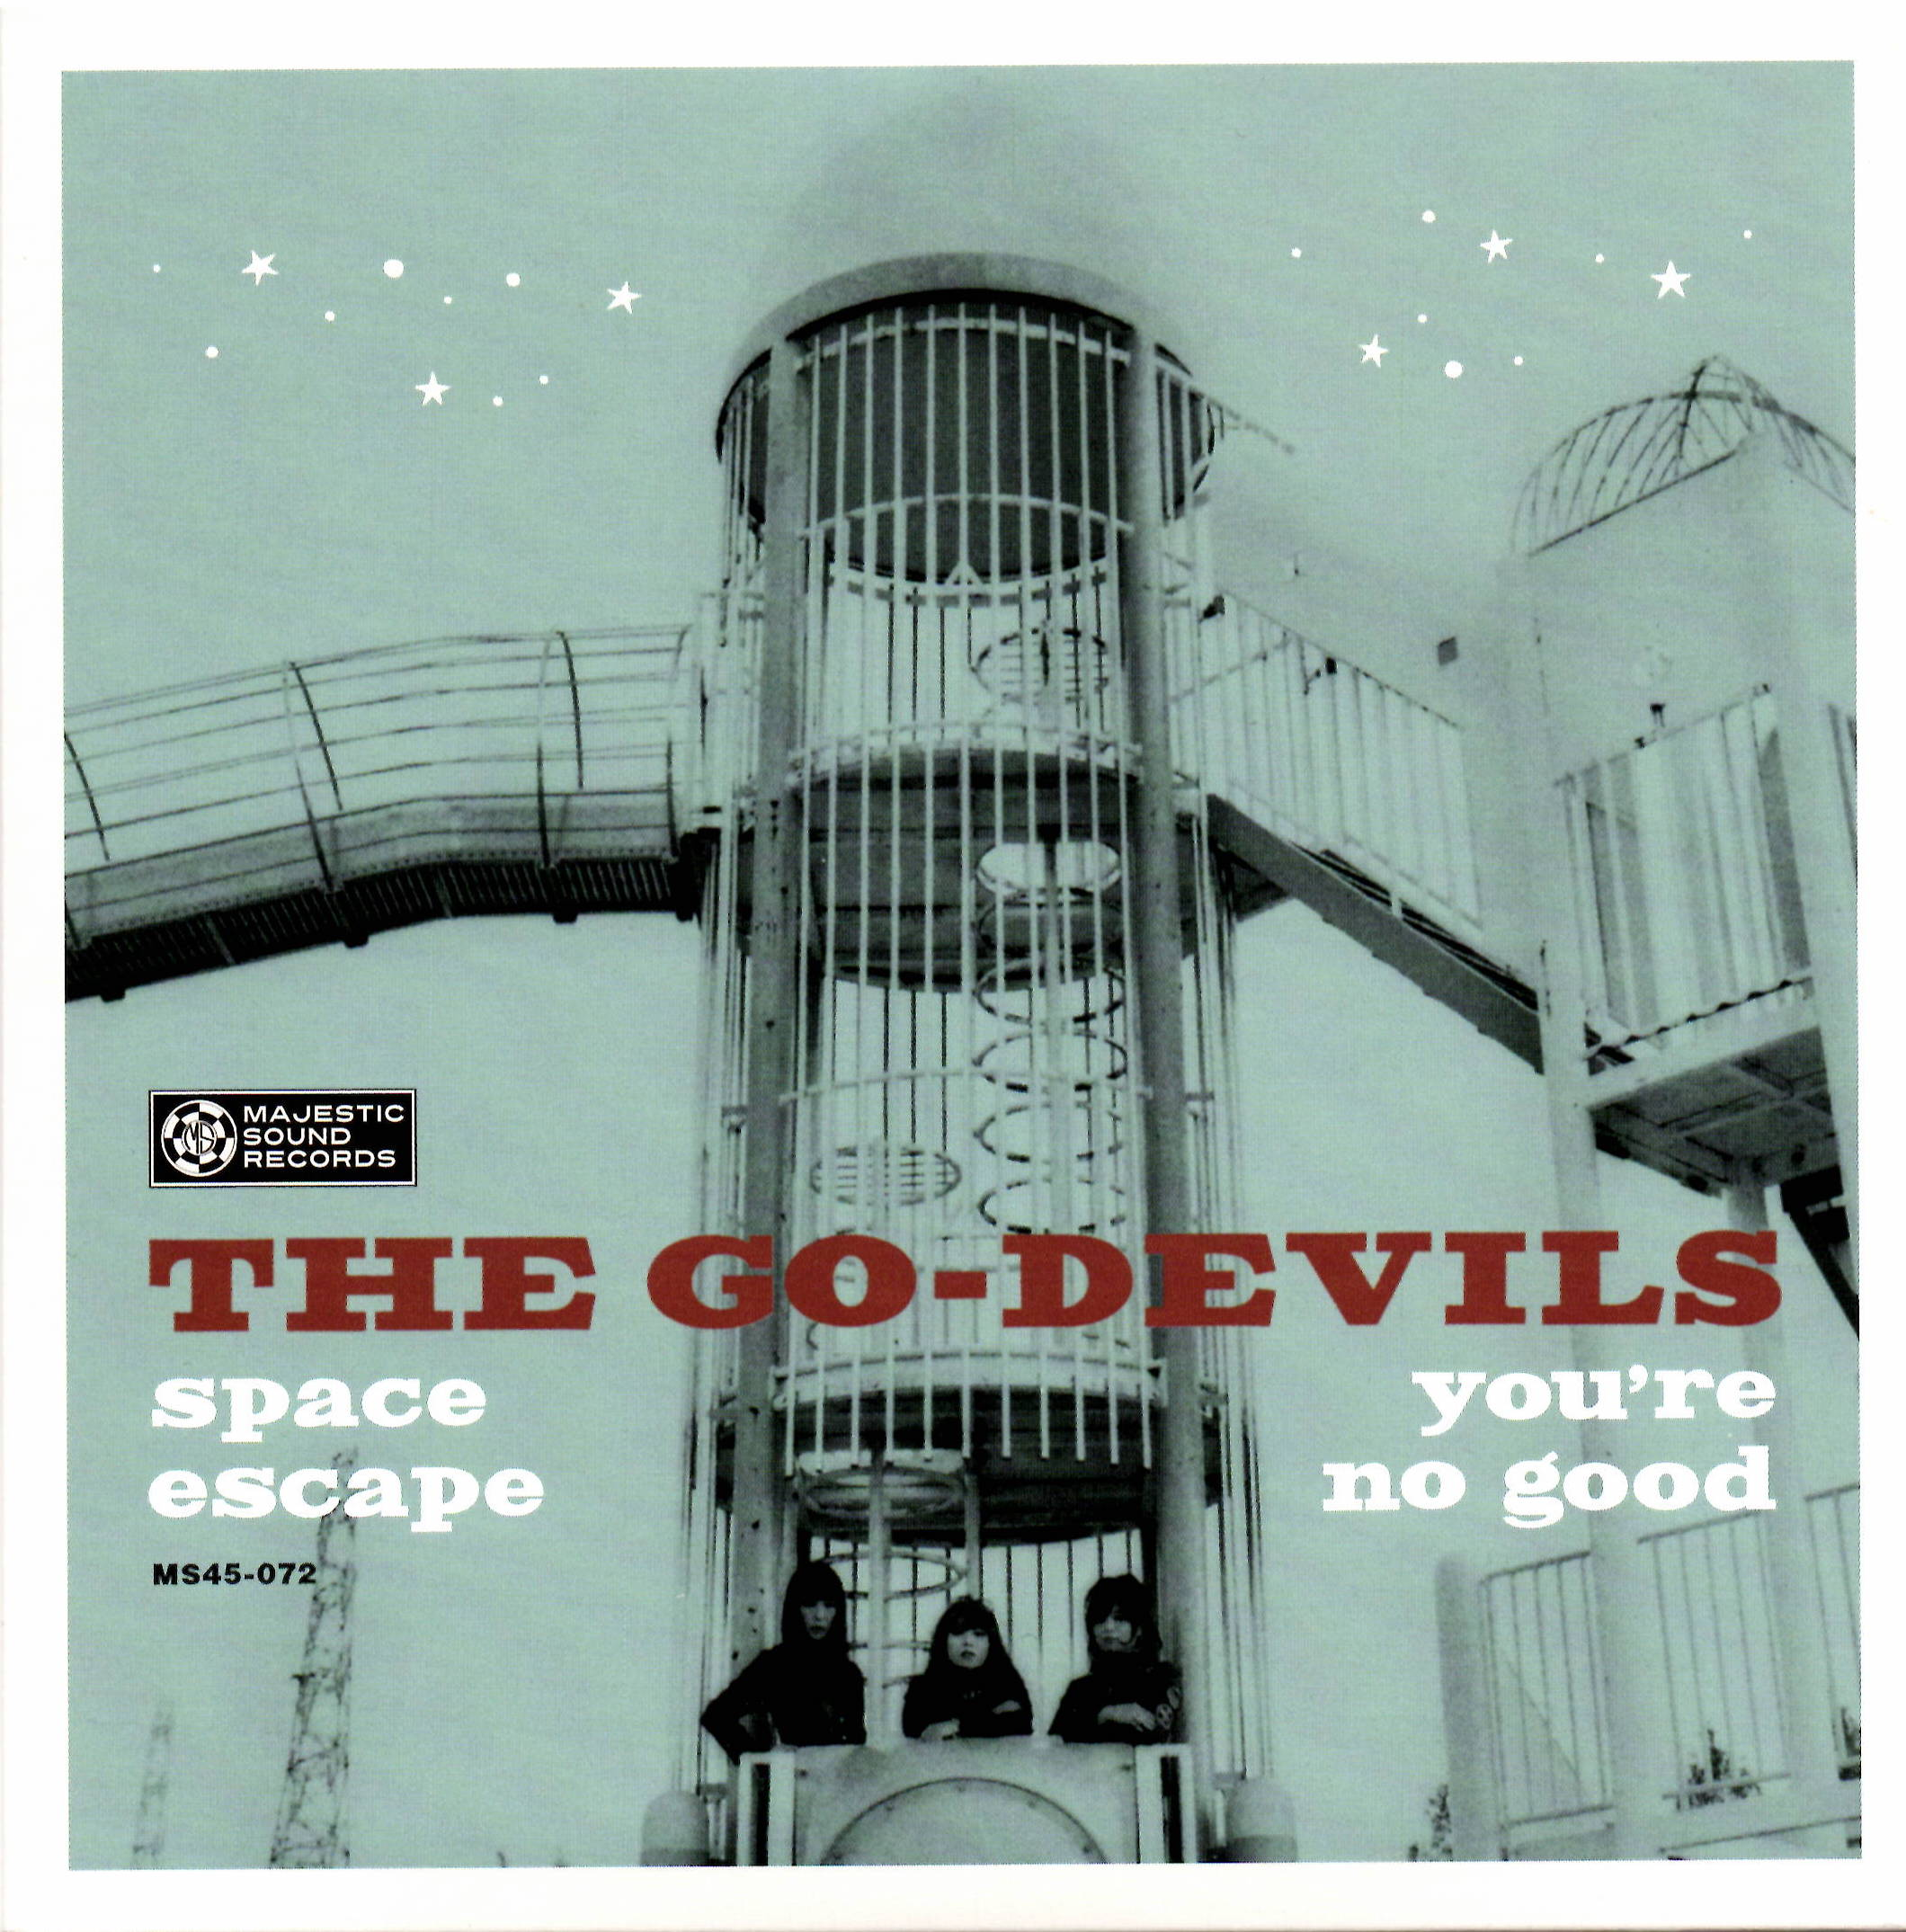 GO-DEVILS / SPACE ESCAPE